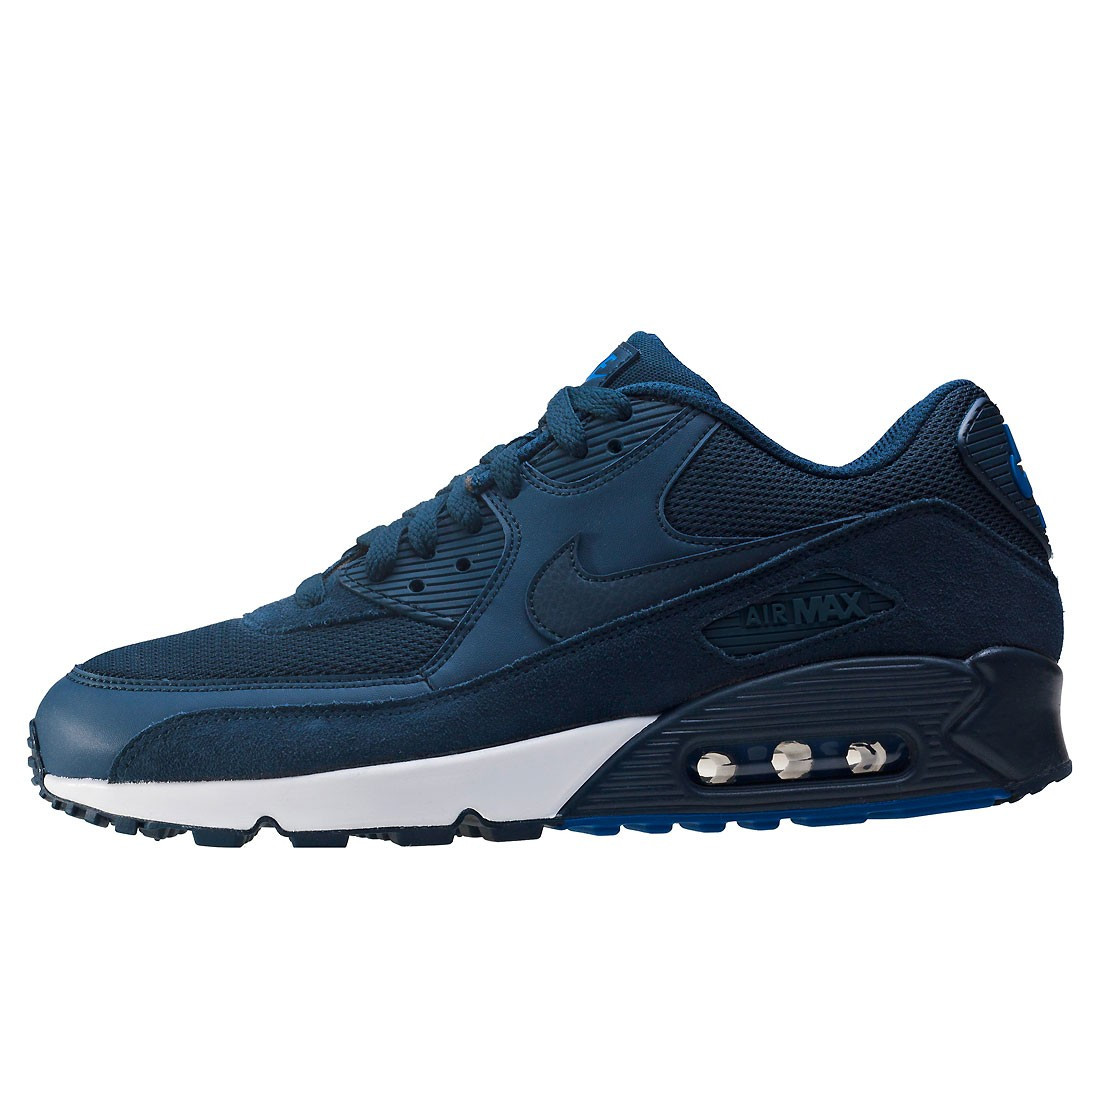 Air Max 90 Essential Adorable Nike Air Max 90 Essential Mens Trainers In Navy Of 36  Adorable Air Max 90 Essential